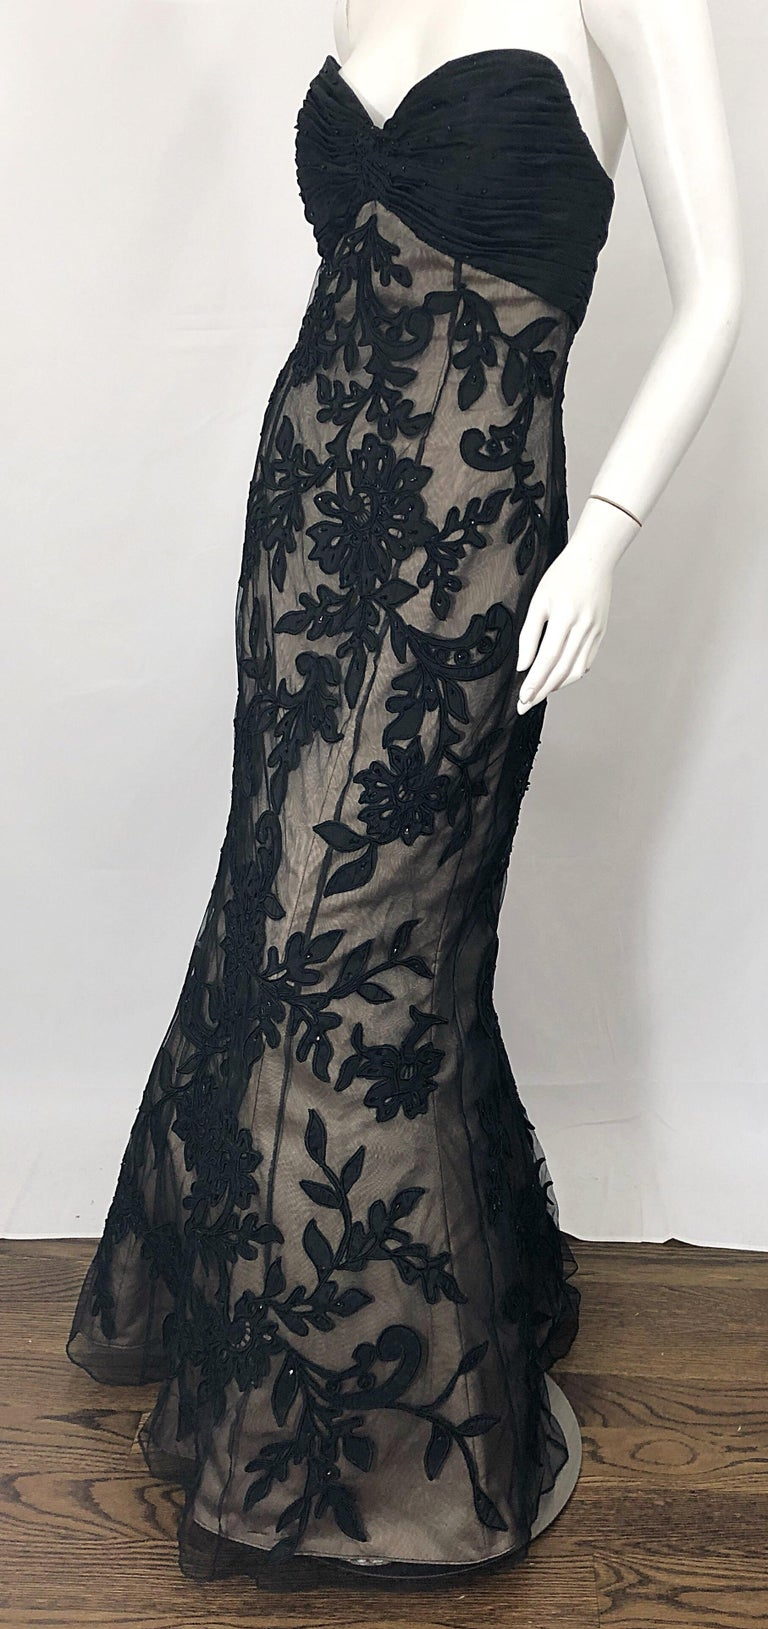 Vintage Bill Blass Couture Size 4 / 6 Black + Nude Beaded Strapless Mermaid Gown For Sale 5